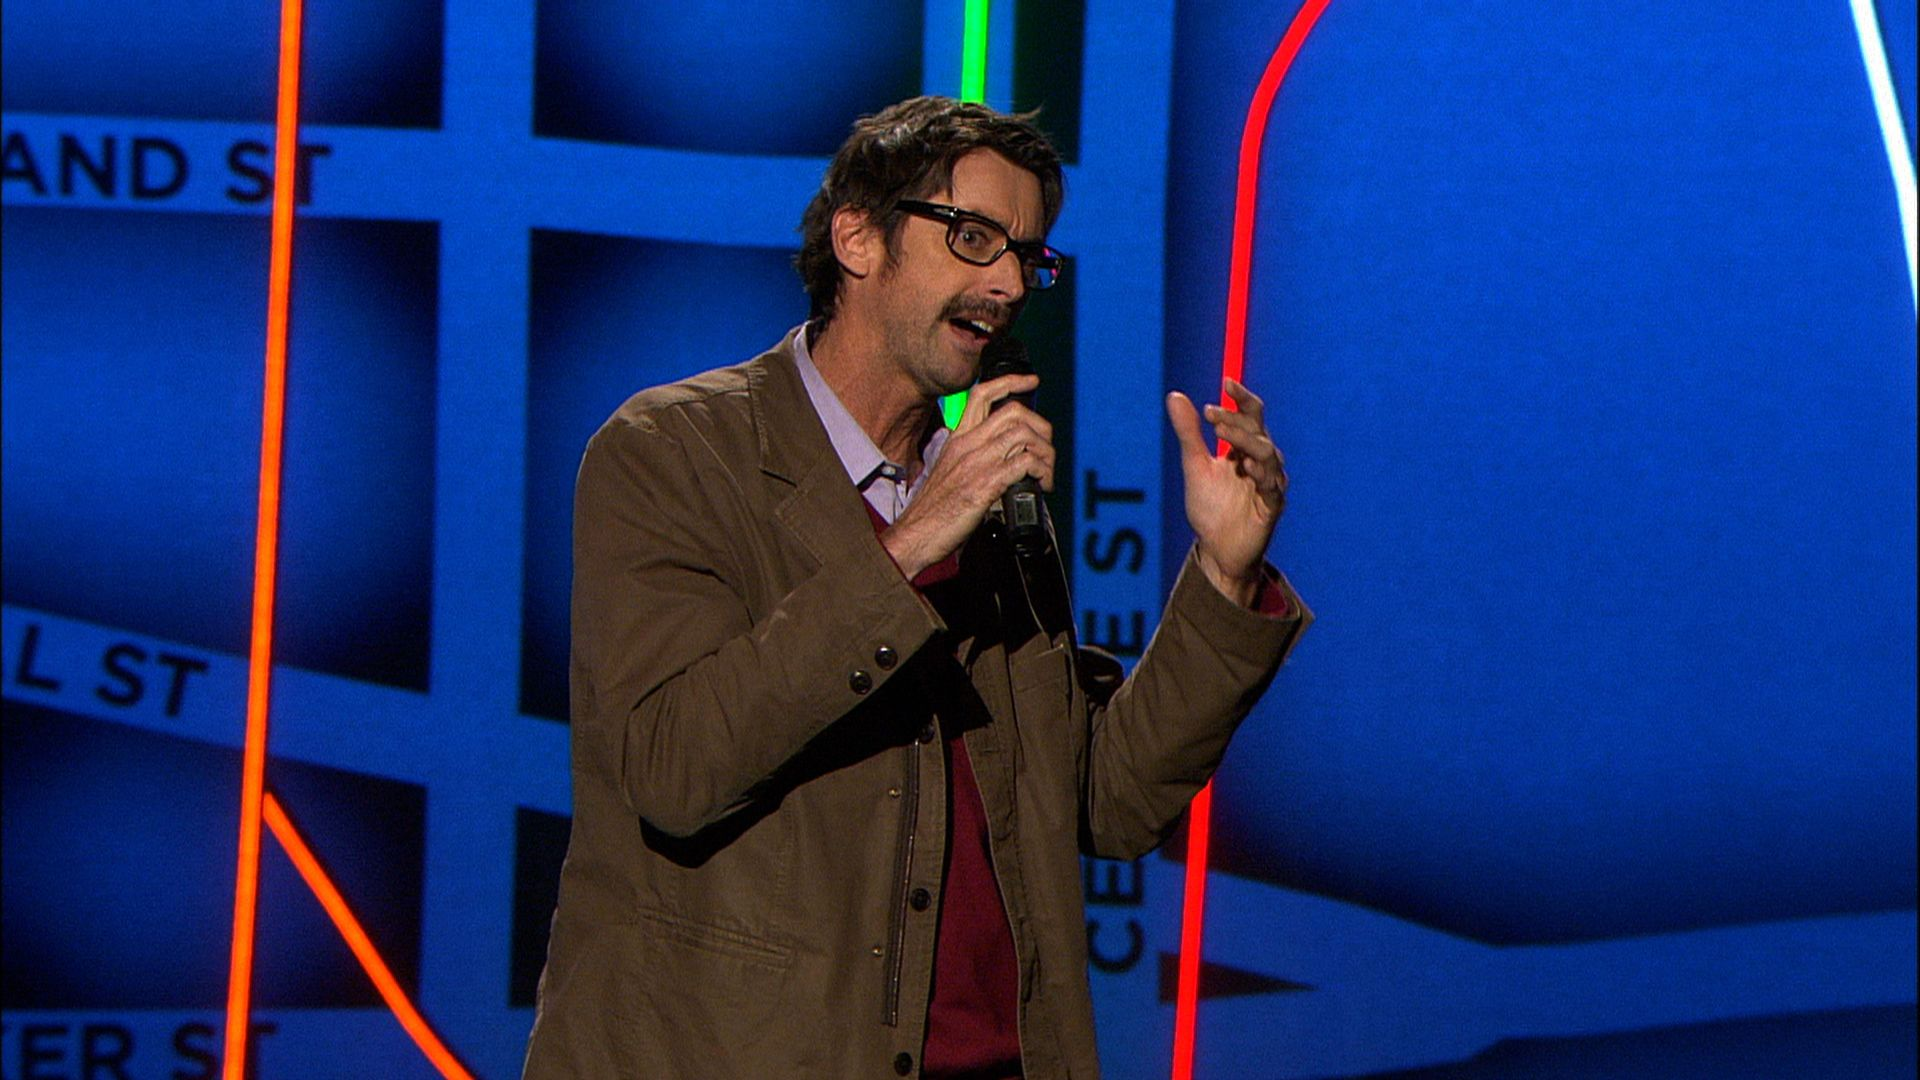 John Oliver's New York Stand-Up Show | Comedy Central: Kirk Fox - Airplane Seats